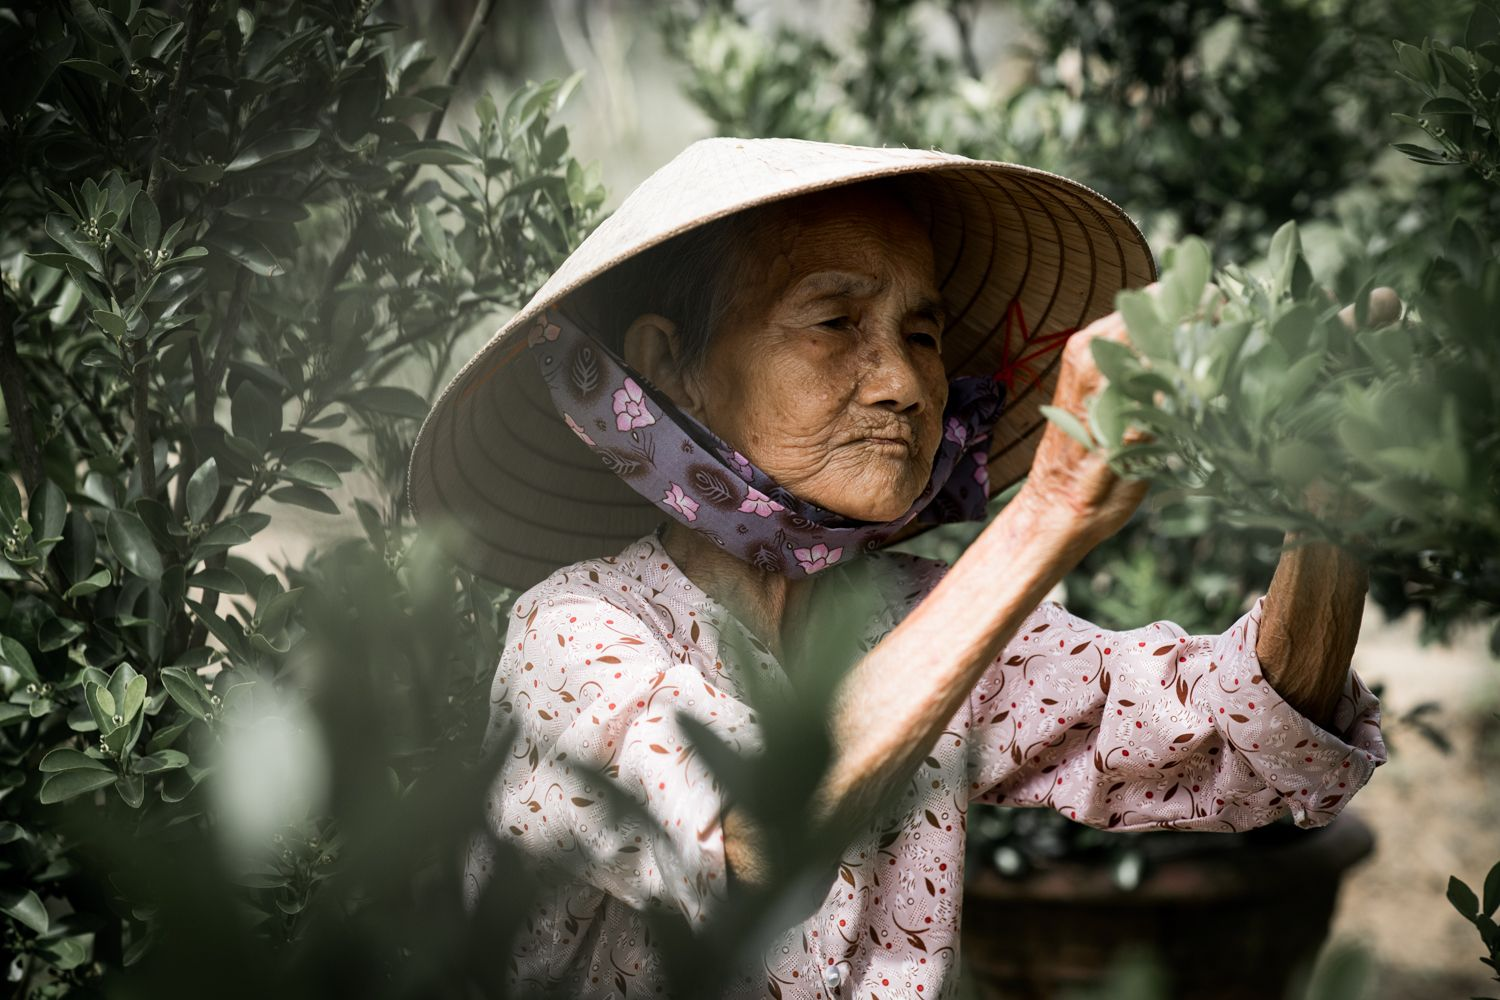 Concentration (Hoi An, Vietnam)